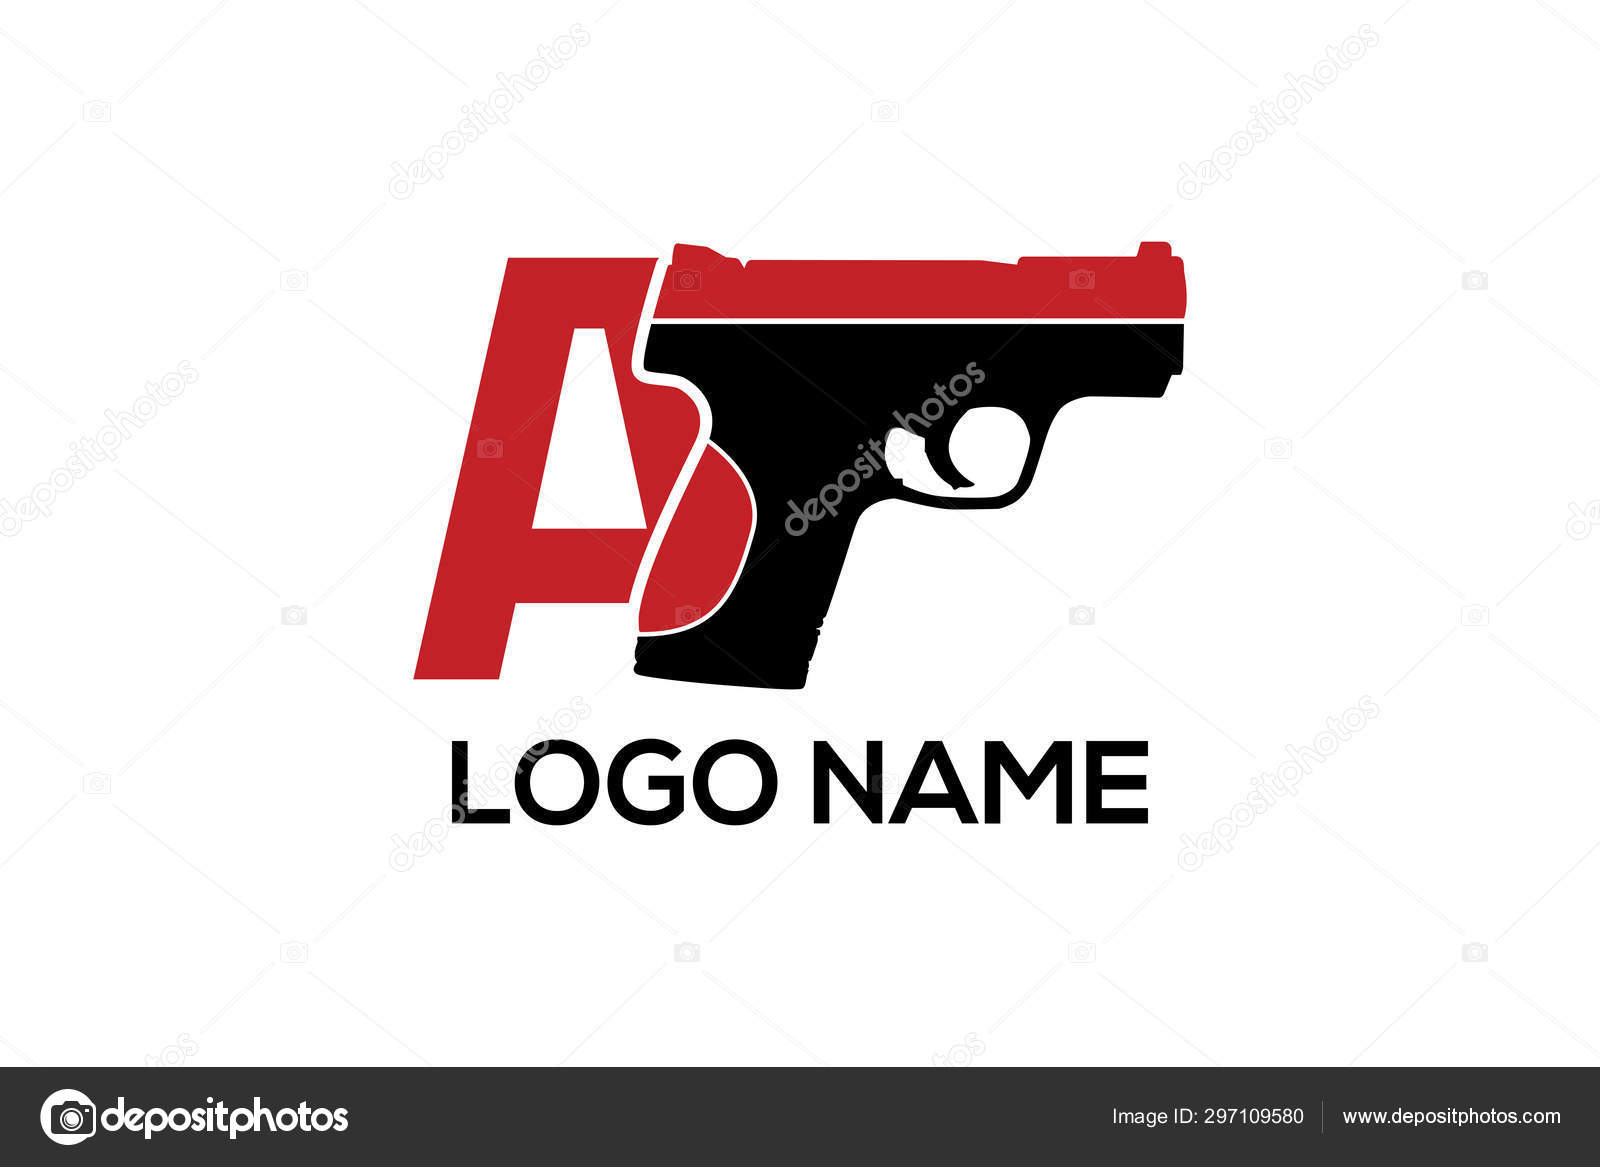 pistol weapon logo label emblem pair crossed pistol guns shooting stock vector c billah99 297109580 pistol weapon logo label emblem pair crossed pistol guns shooting stock vector c billah99 297109580